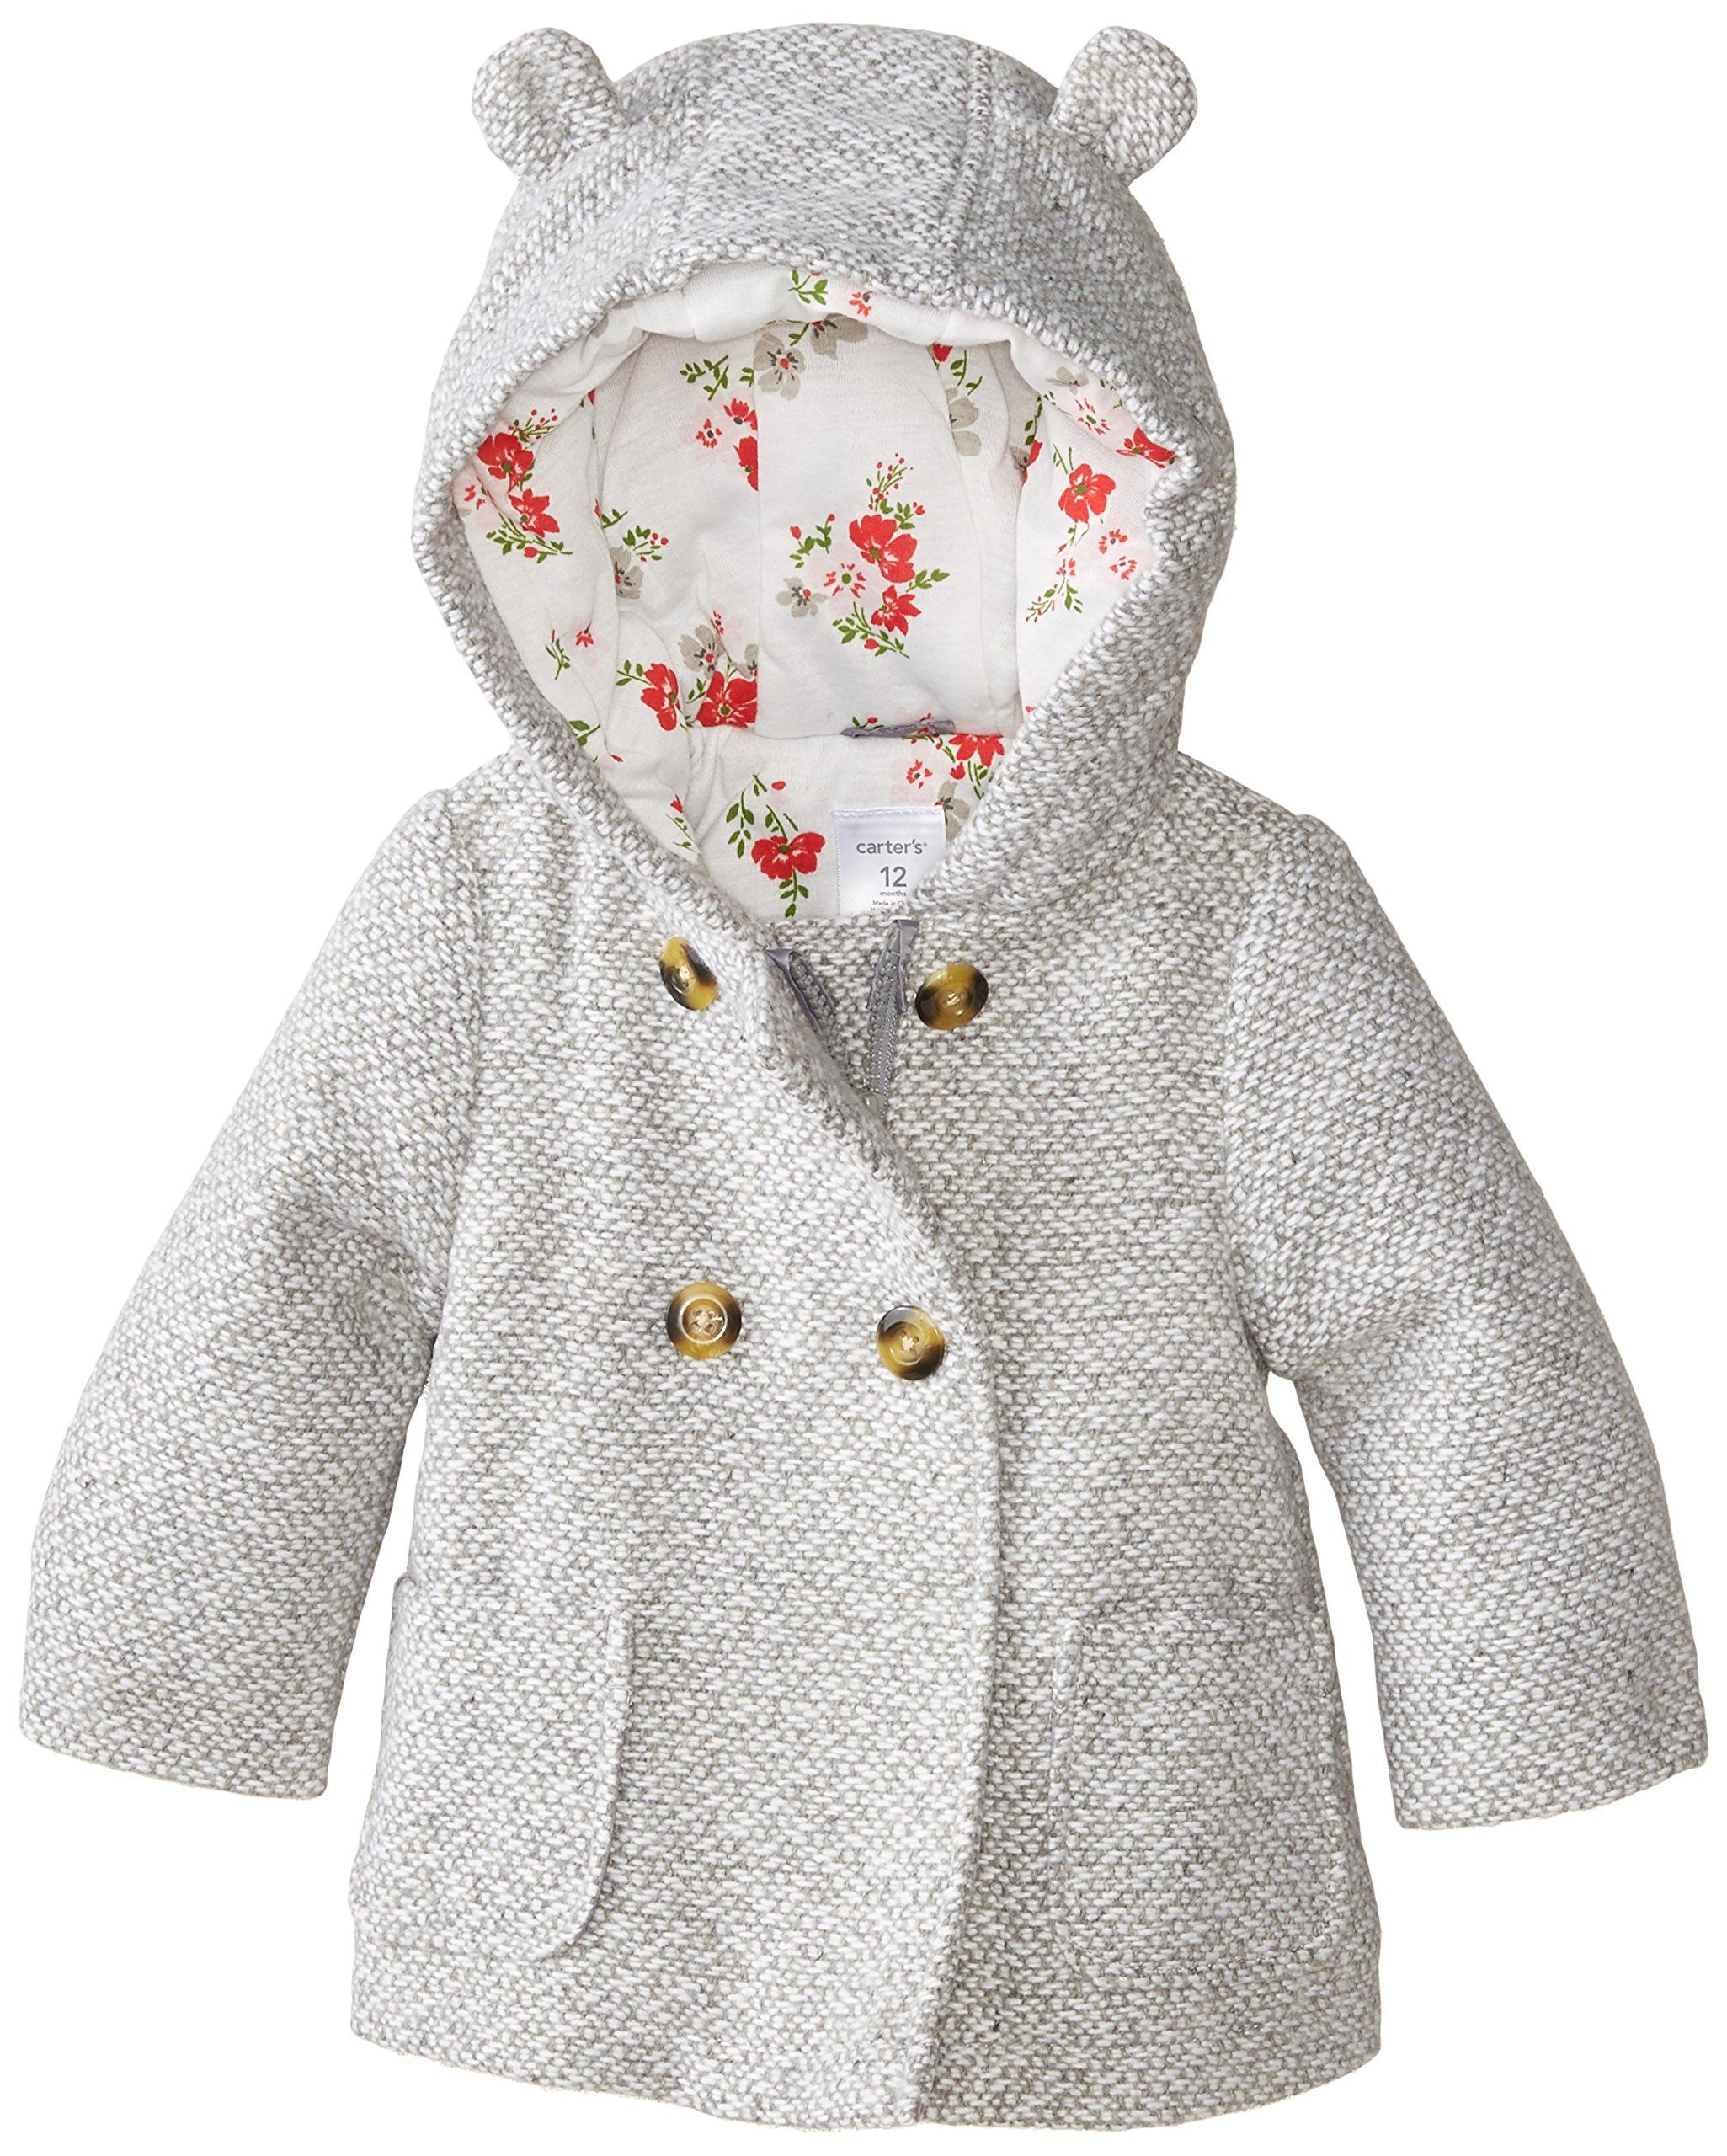 Keep baby warm all winter with stylish coats for babies and toddlers. Baby Depot Free In-Store Returns · Save on Top Brands · Style for Less · Shop New Winter Styles.